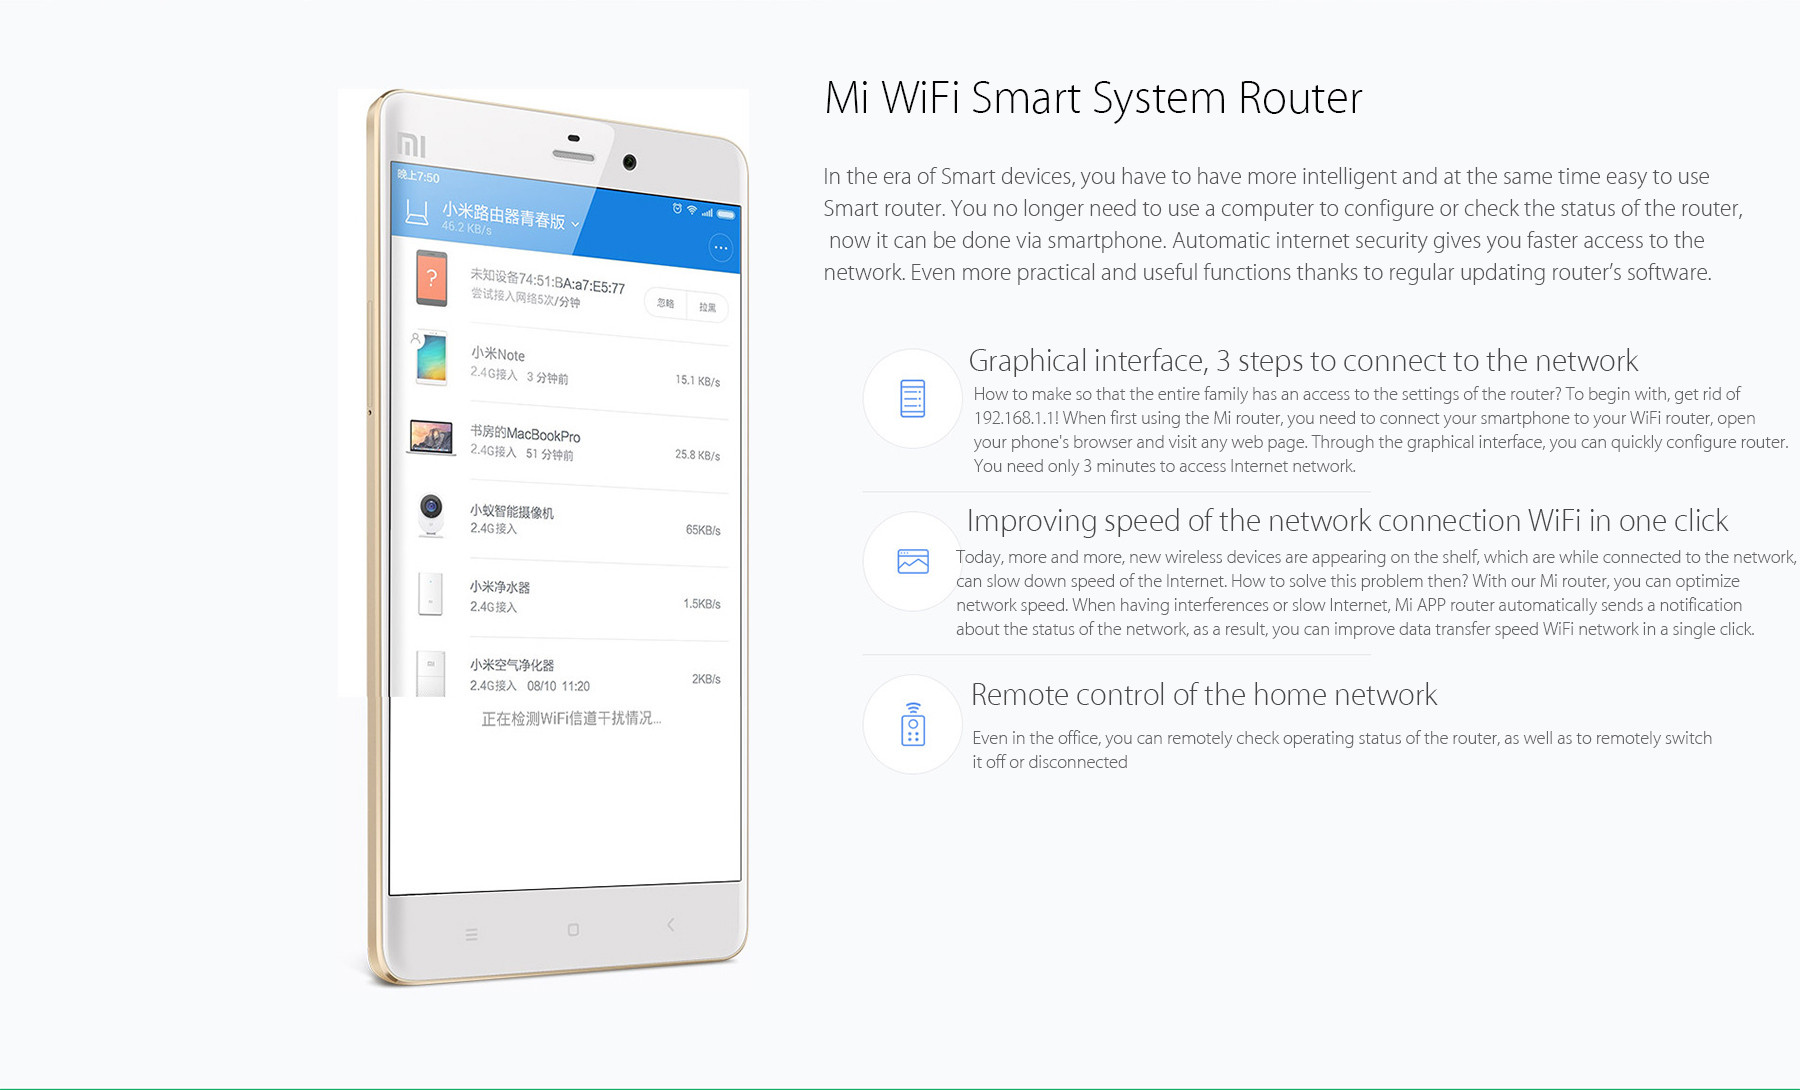 XiaoMi Mi WiFi Router Youth Edition 2.4GHz Band 300Mbps Wireless Repeater for iPhone 6S / 6S Plus / 6 / 6 Plus / iPad Pro / Samsung S6 / Edge S6 / HTC ONE M9 / HUAWEI P8- White